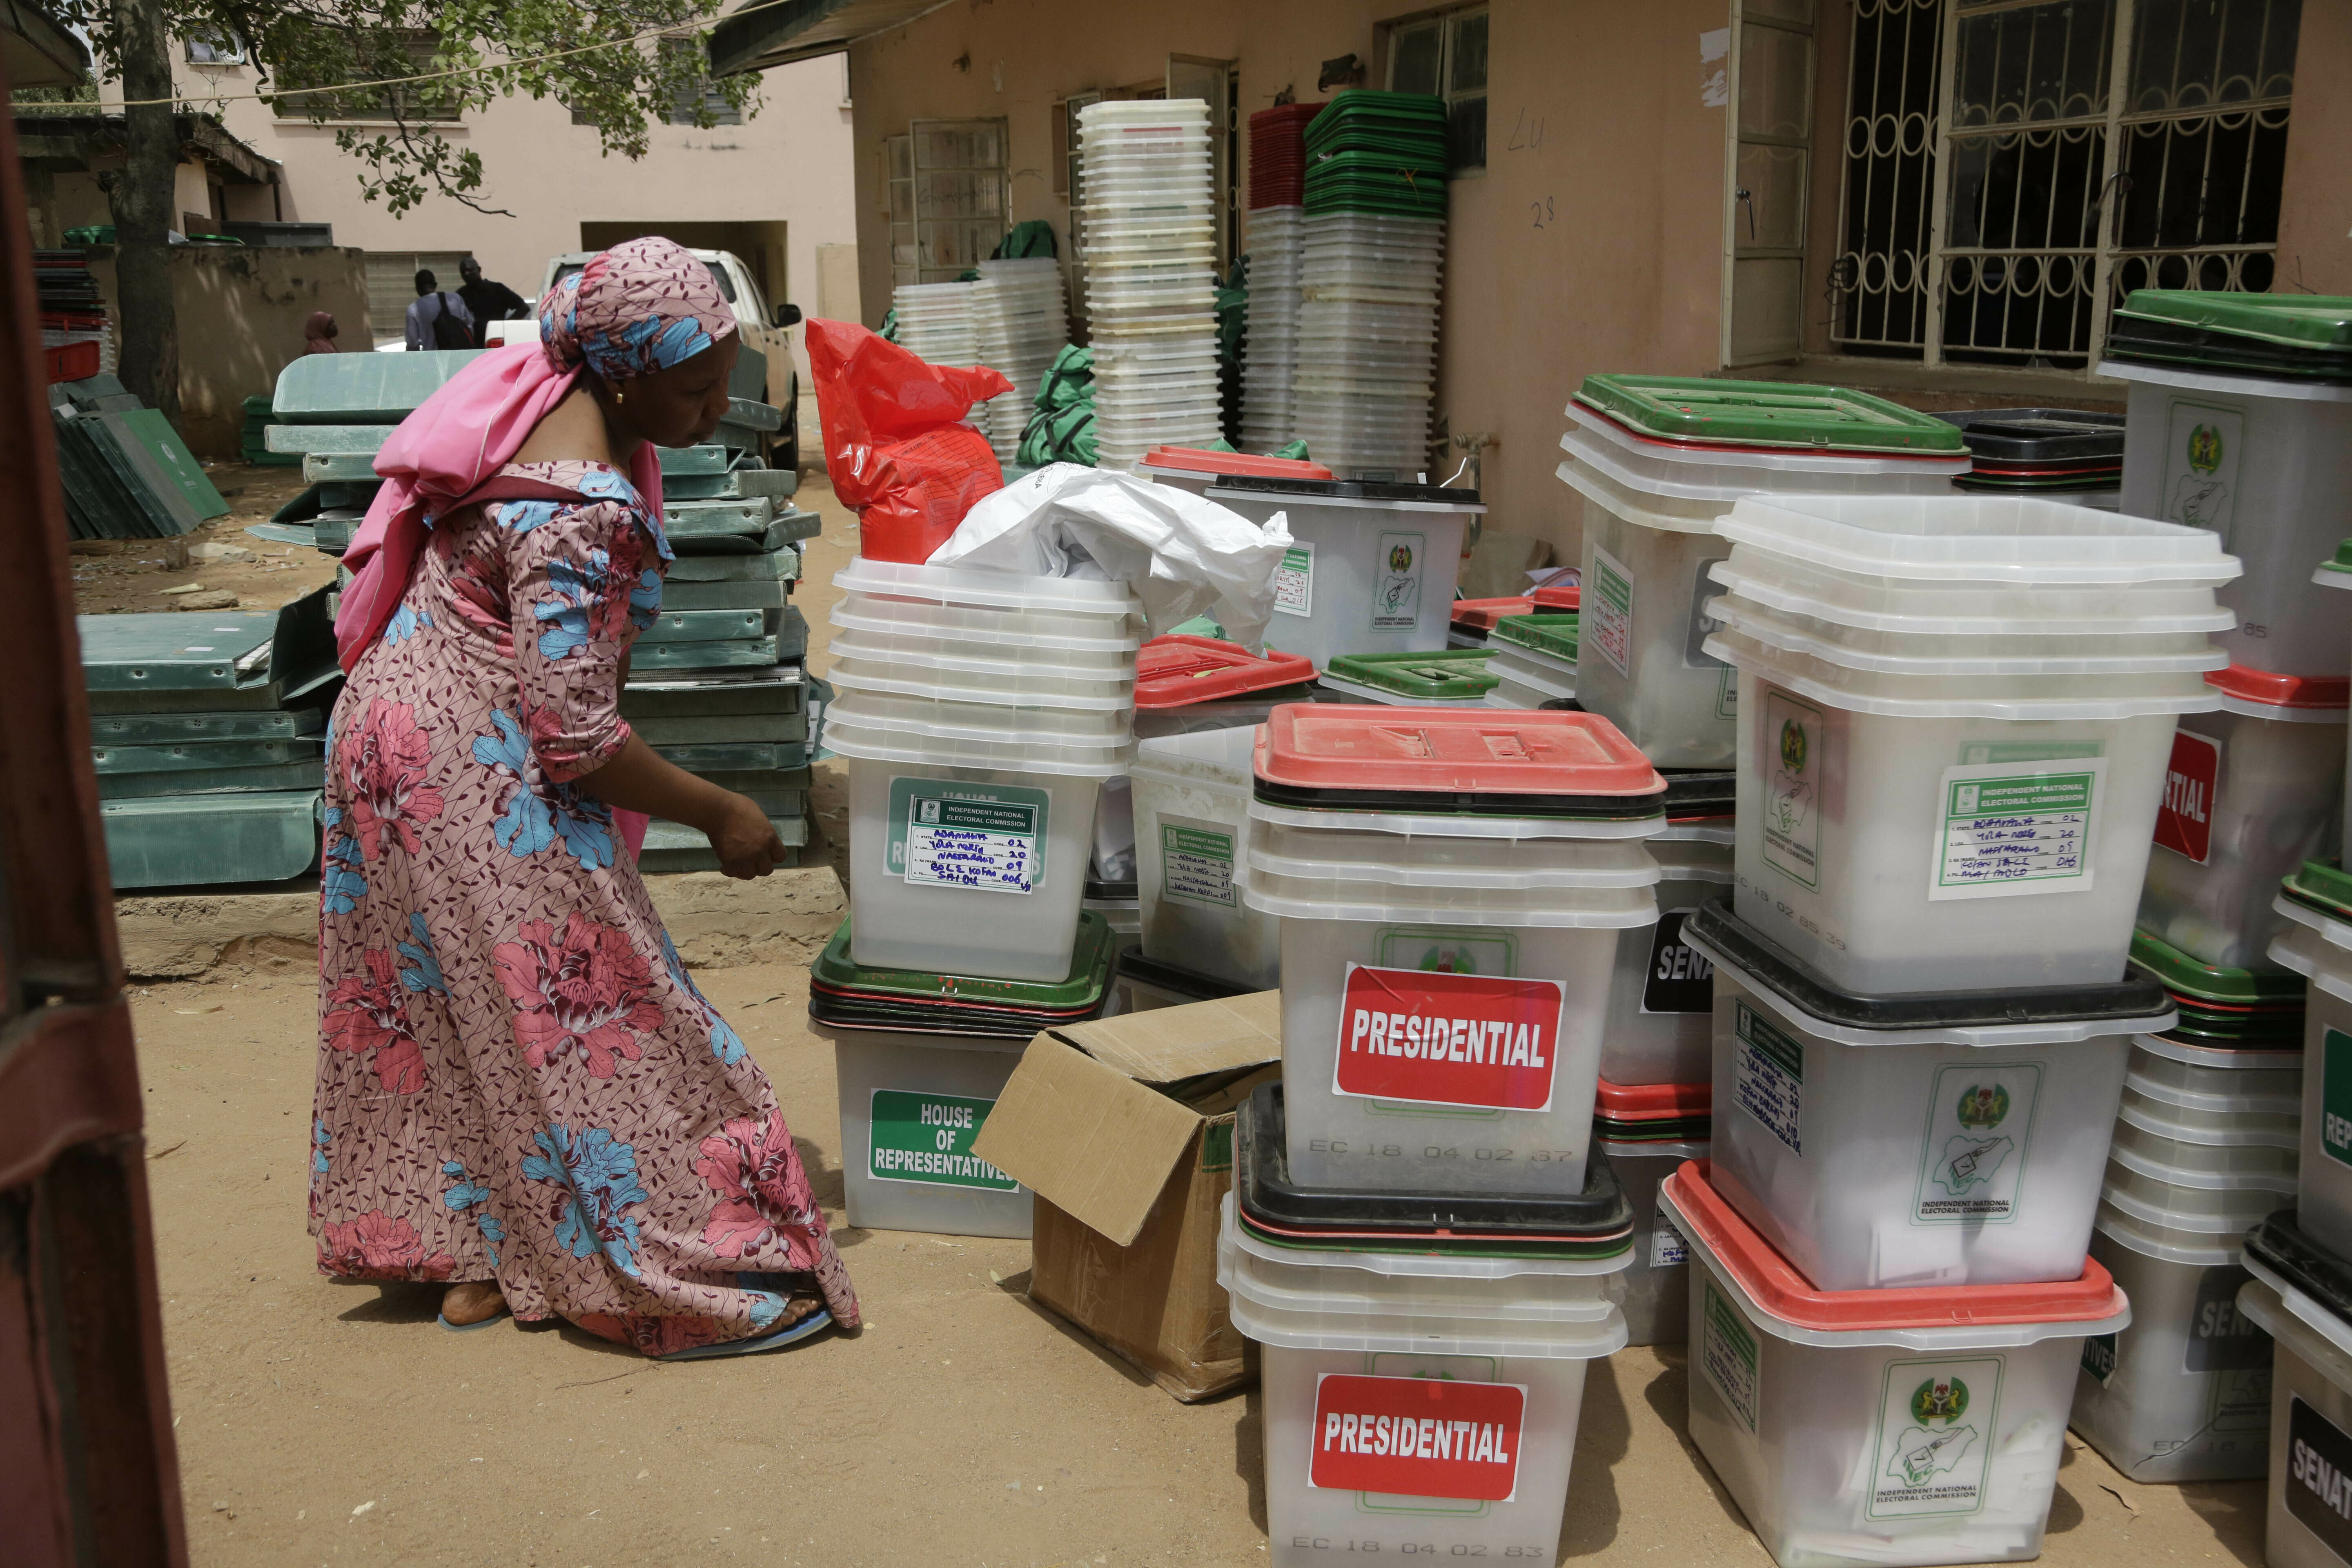 An electoral worker checks ballot boxes at the electoral commission office in Yola, Nigeria, Sunday, Feb. 24, 2019. Vote counting continued Sunday as Nigerians awaited the outcome of a presidential poll seen as a tight race between the president and a former vice president. (AP Photo/Sunday Alamba)